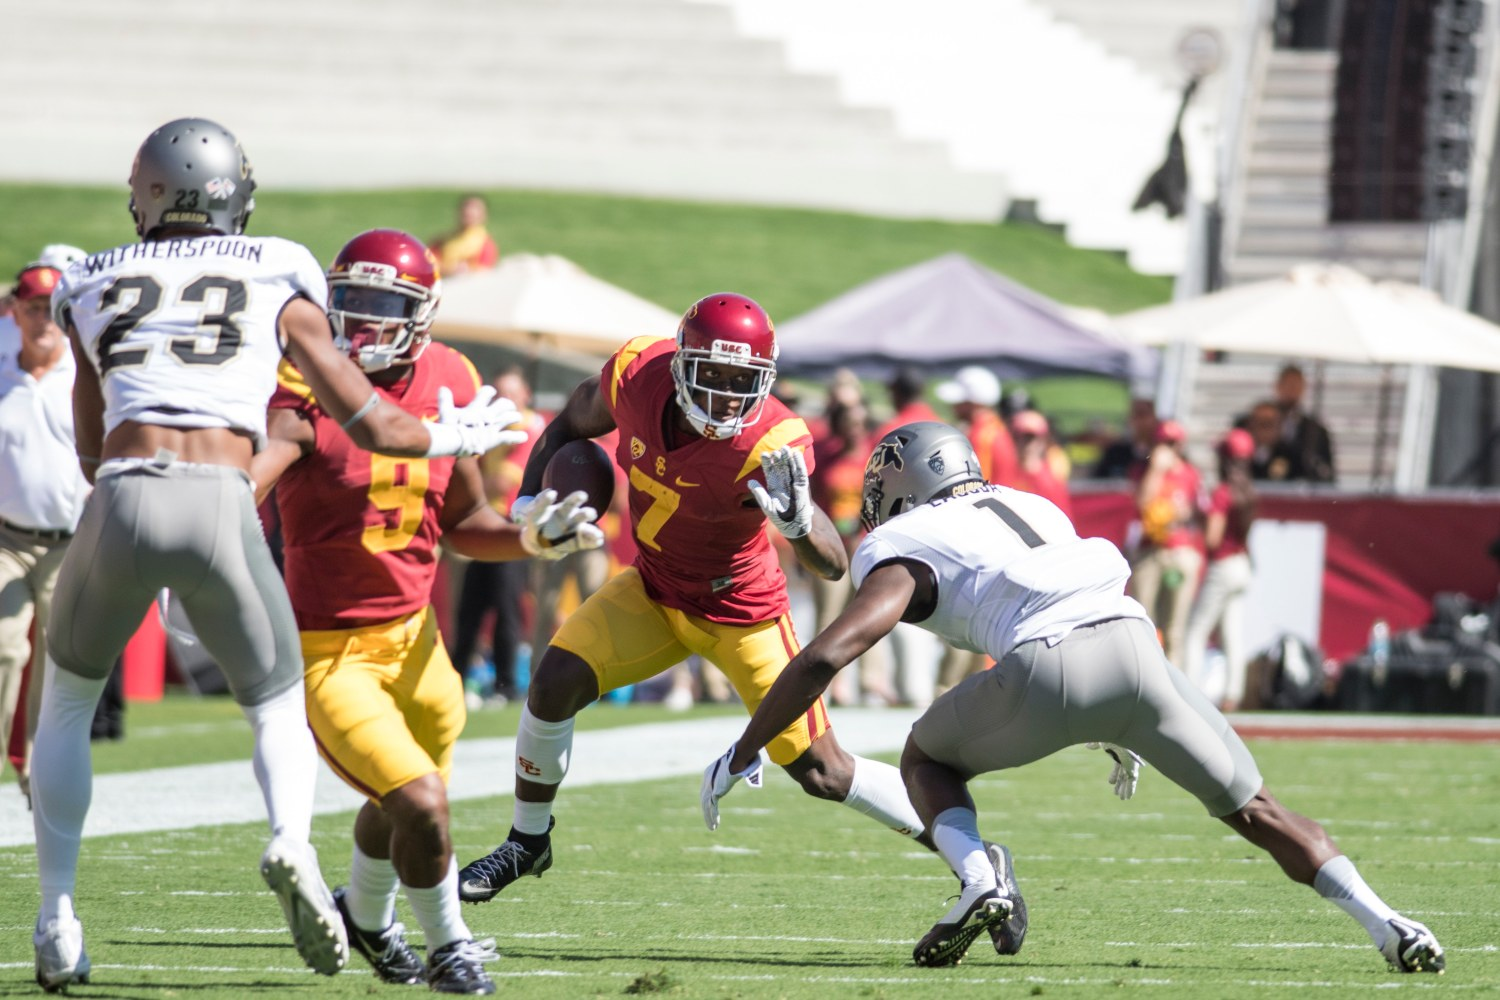 """Brian Chin   Daily Trojan """"I'm sad for him"""" · A torn ACL will end redshirt junior wide receiver Steven Mitchell Jr.'s season. Mitchell was third on the team with 24 catches. Head coach Clay Helton said Mitchell was playing his """"best ball."""""""